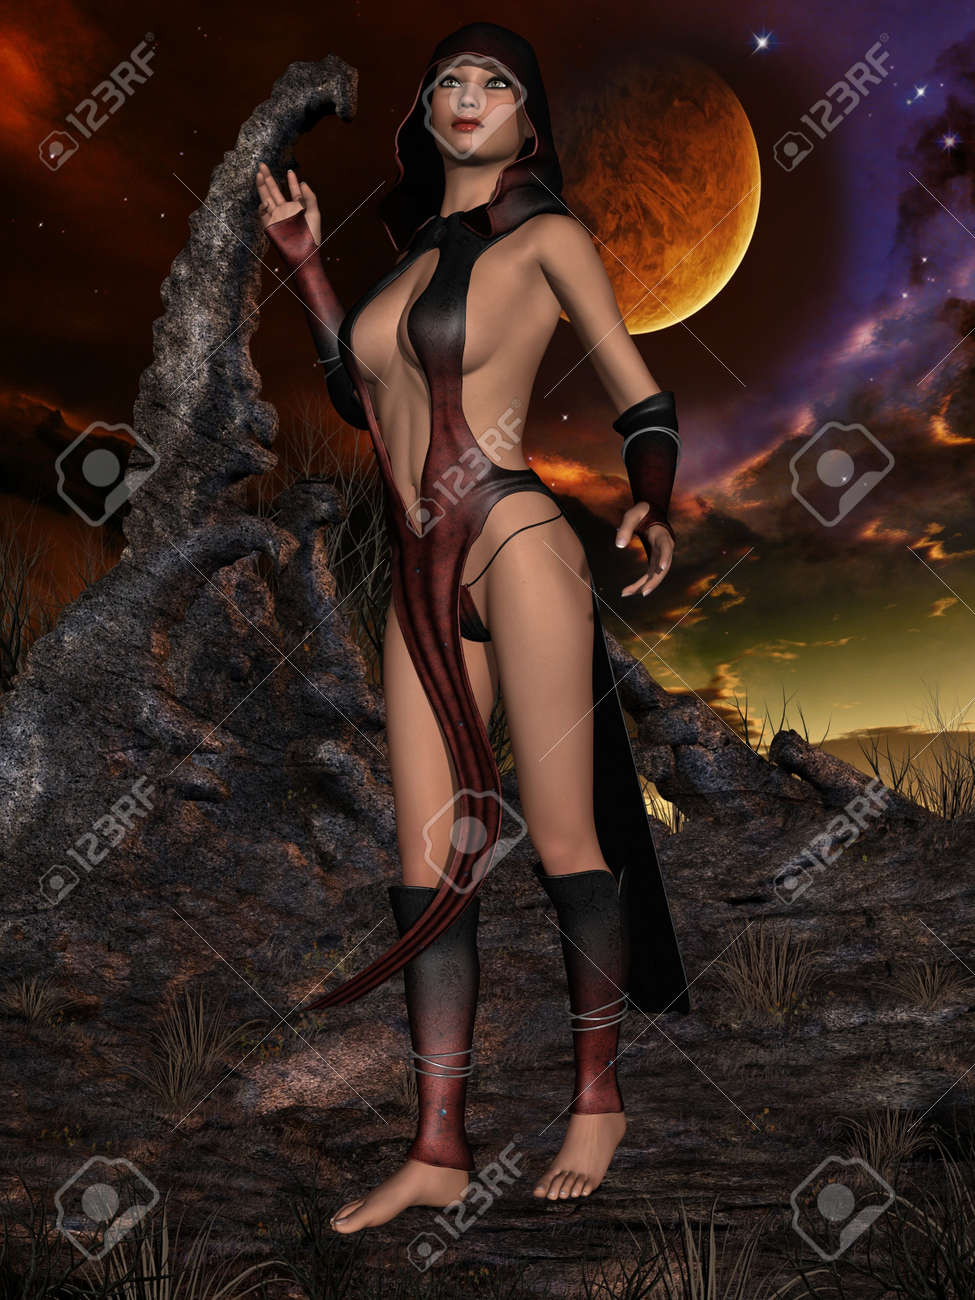 Sexy 3d priestess babes pictures sex tube